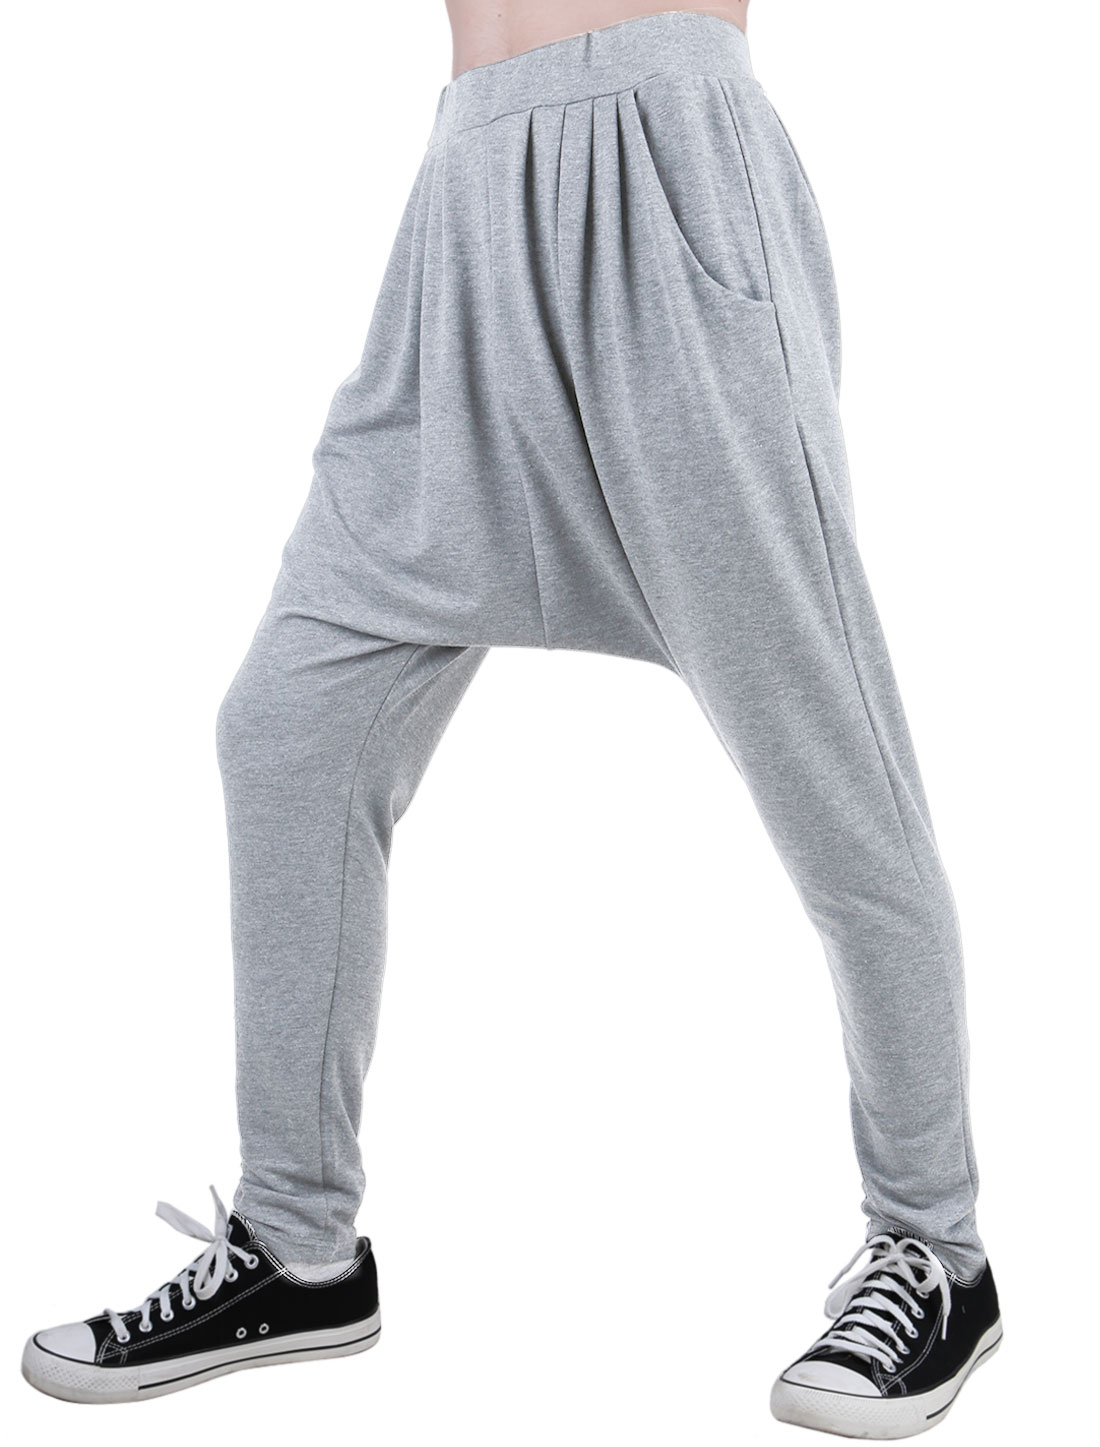 Fashion Mens Hip Hop Casual Trousers Baggy Harem Pants Light Gray W28/30